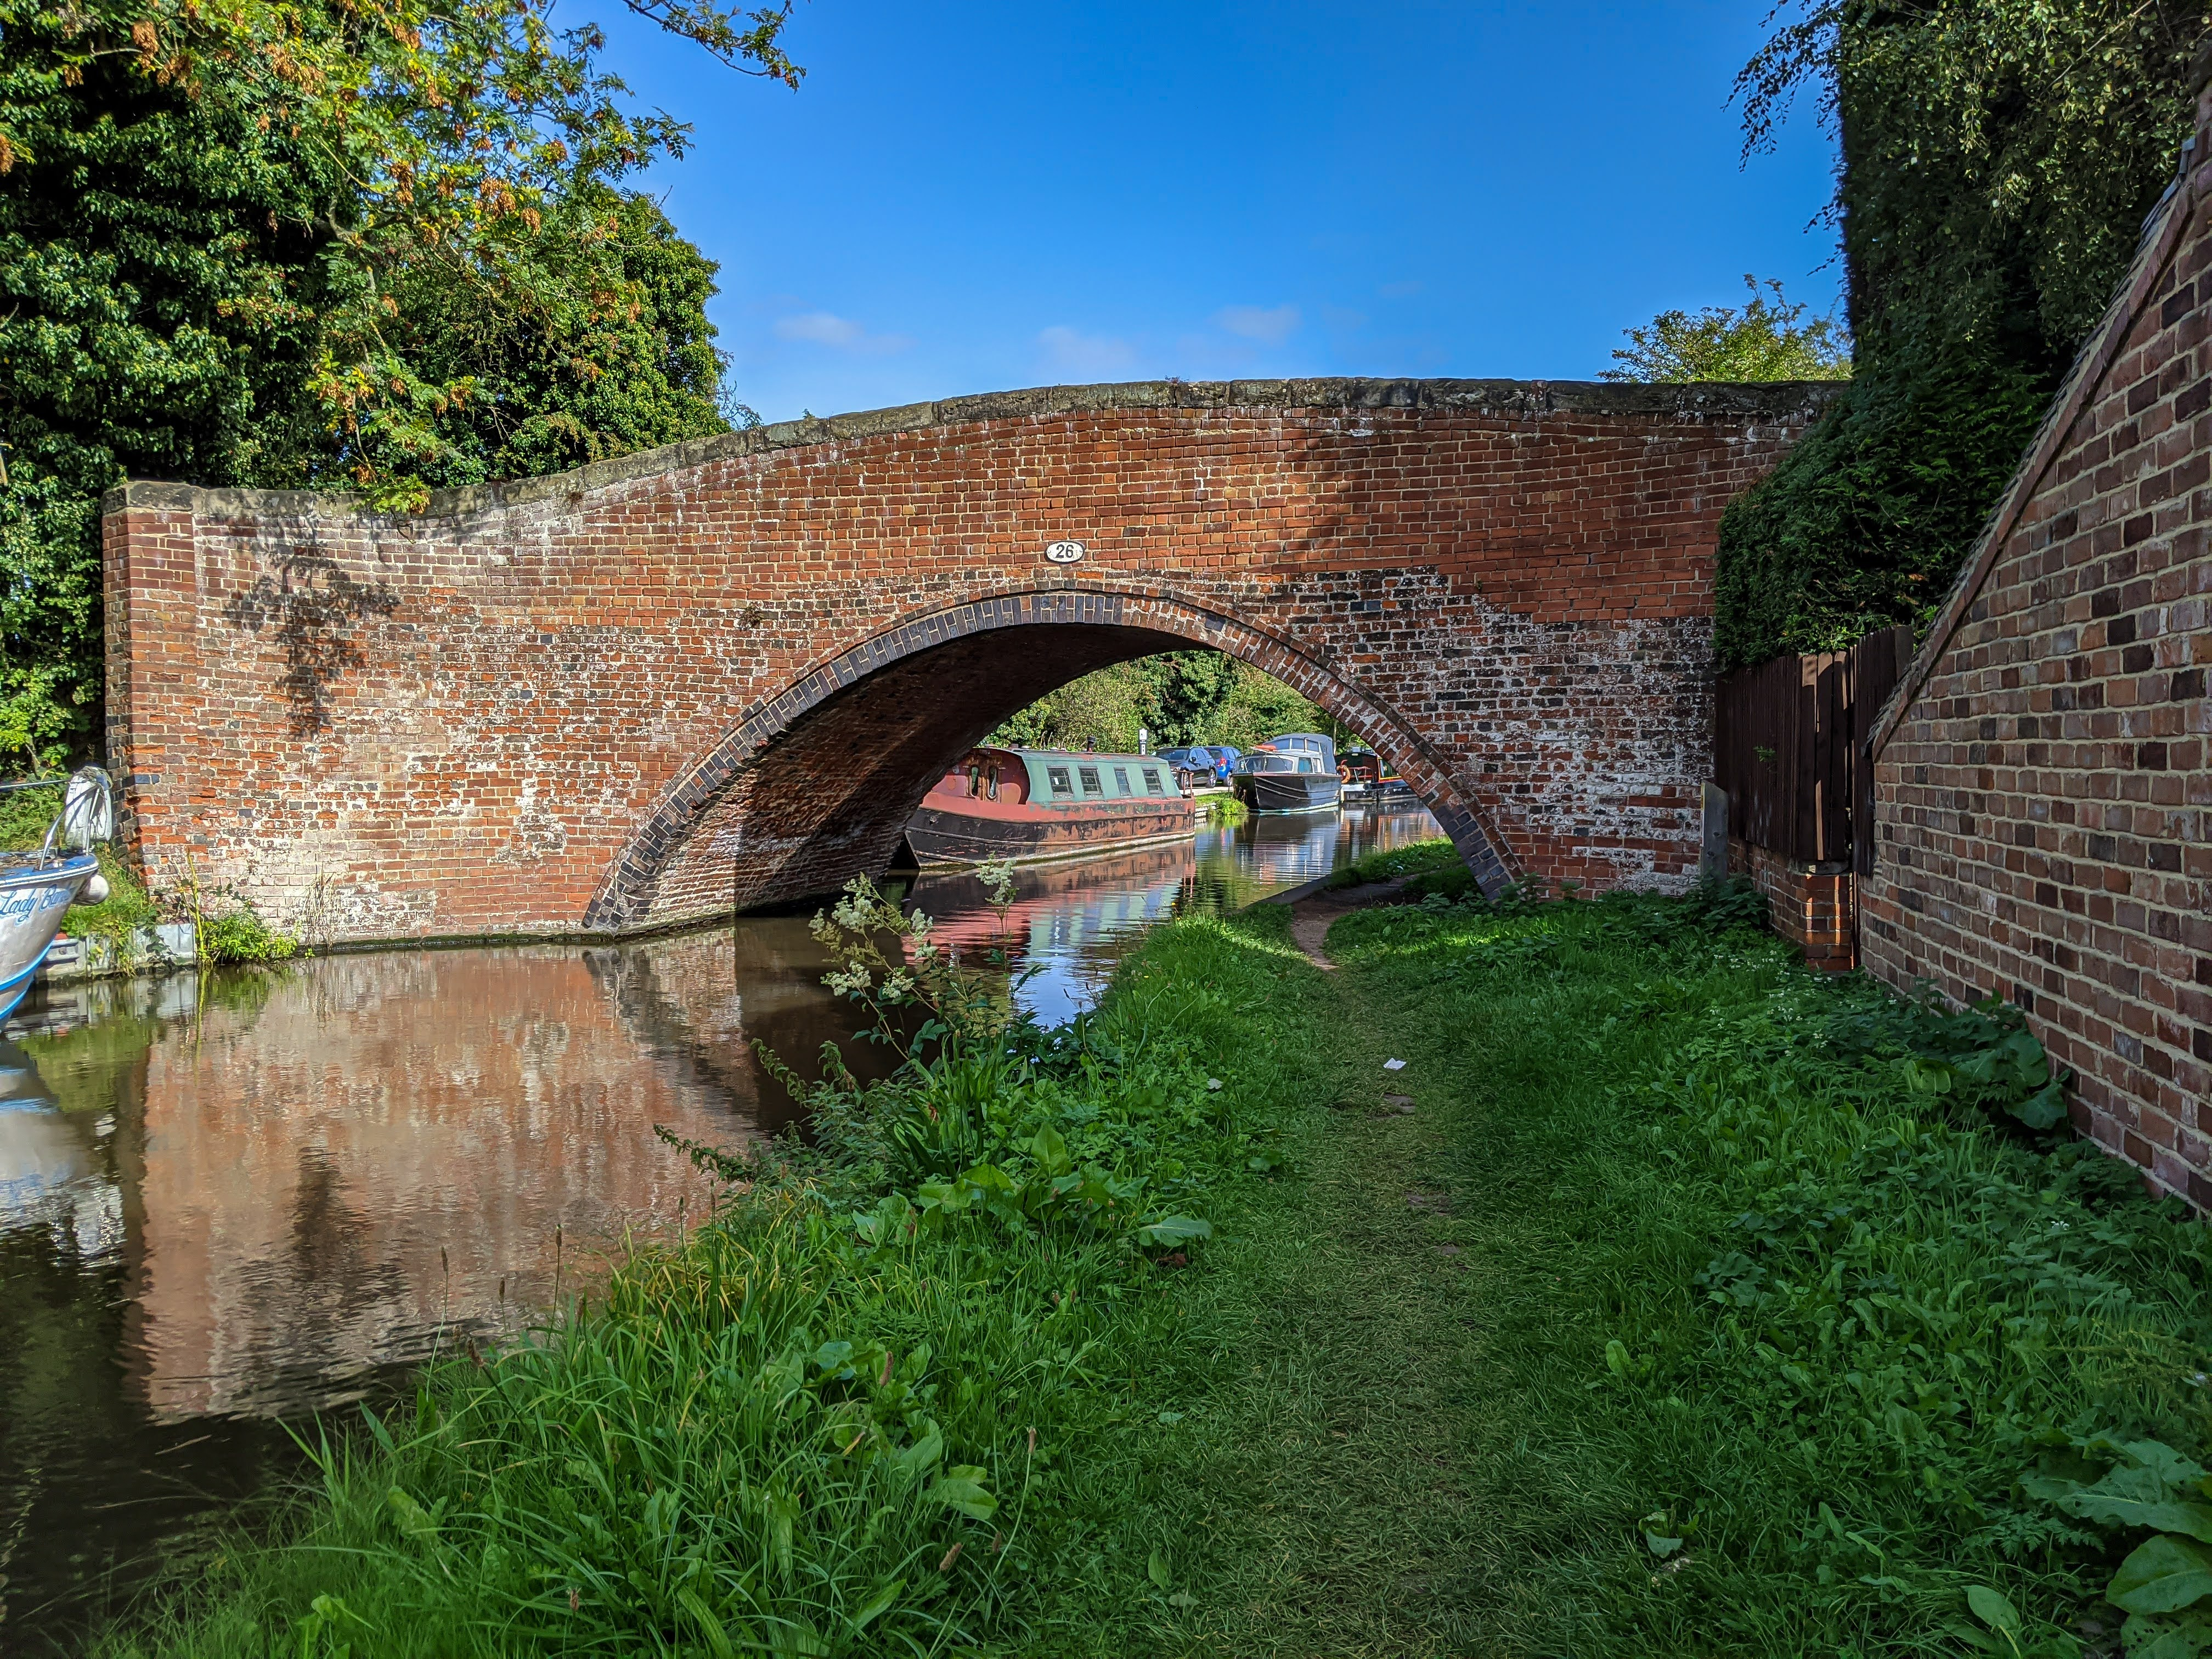 One of the many bridges over the canal.